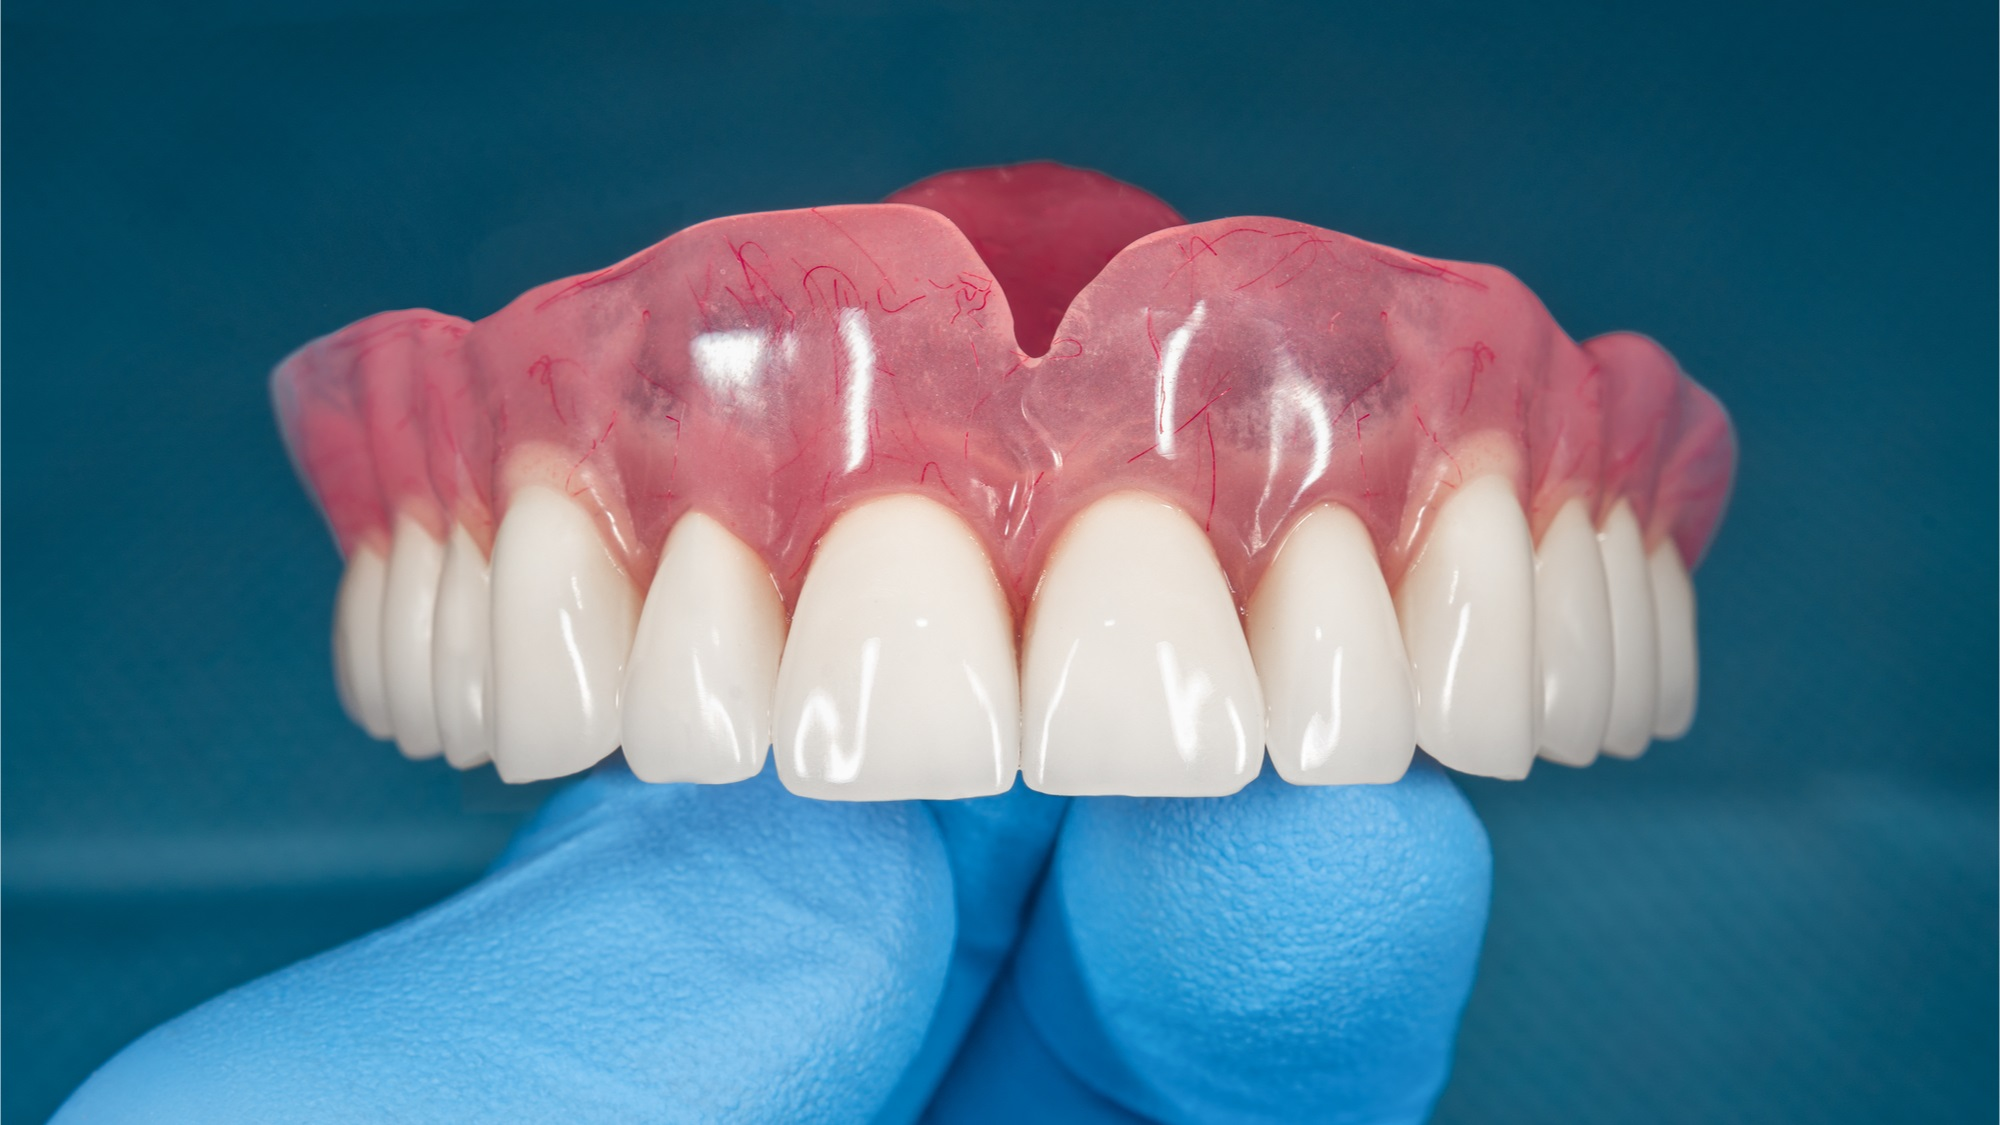 The future is now: Revolutionising dentistry with digital dentures